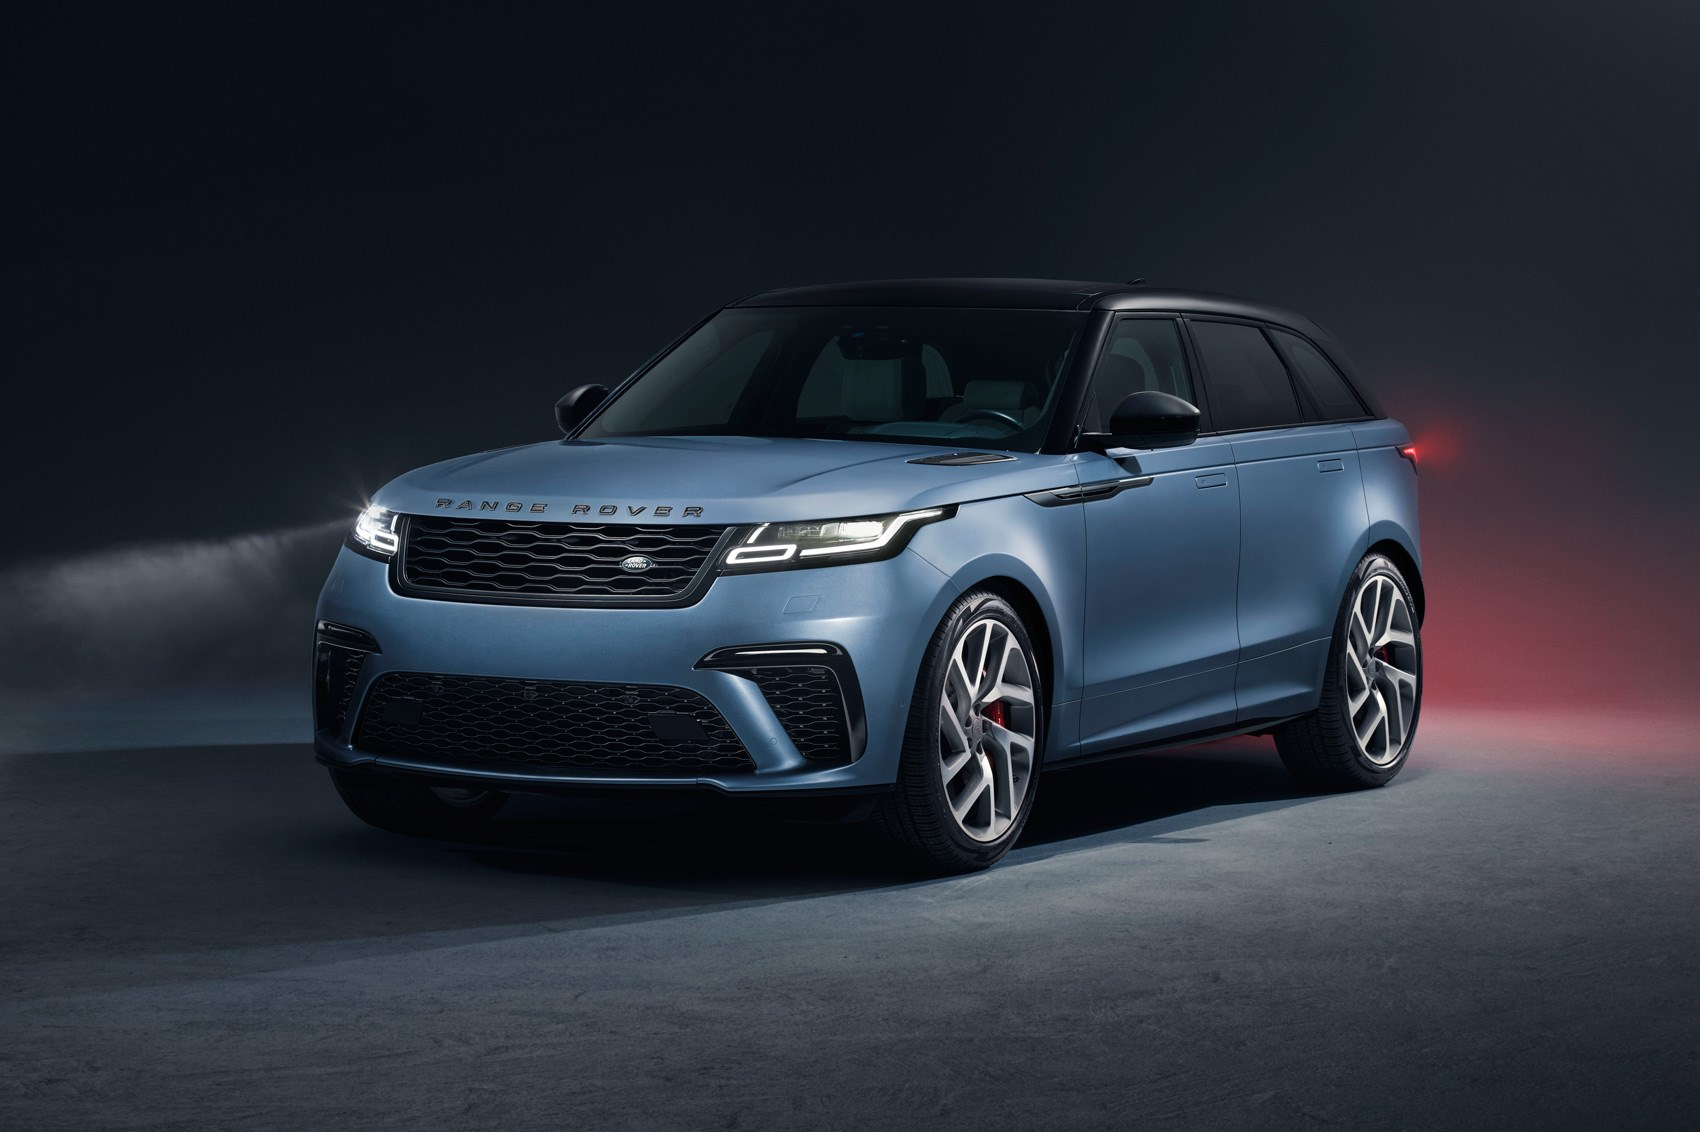 New Range Rover >> Range Rover Velar Suv Prices Pictures And Specs Car Magazine